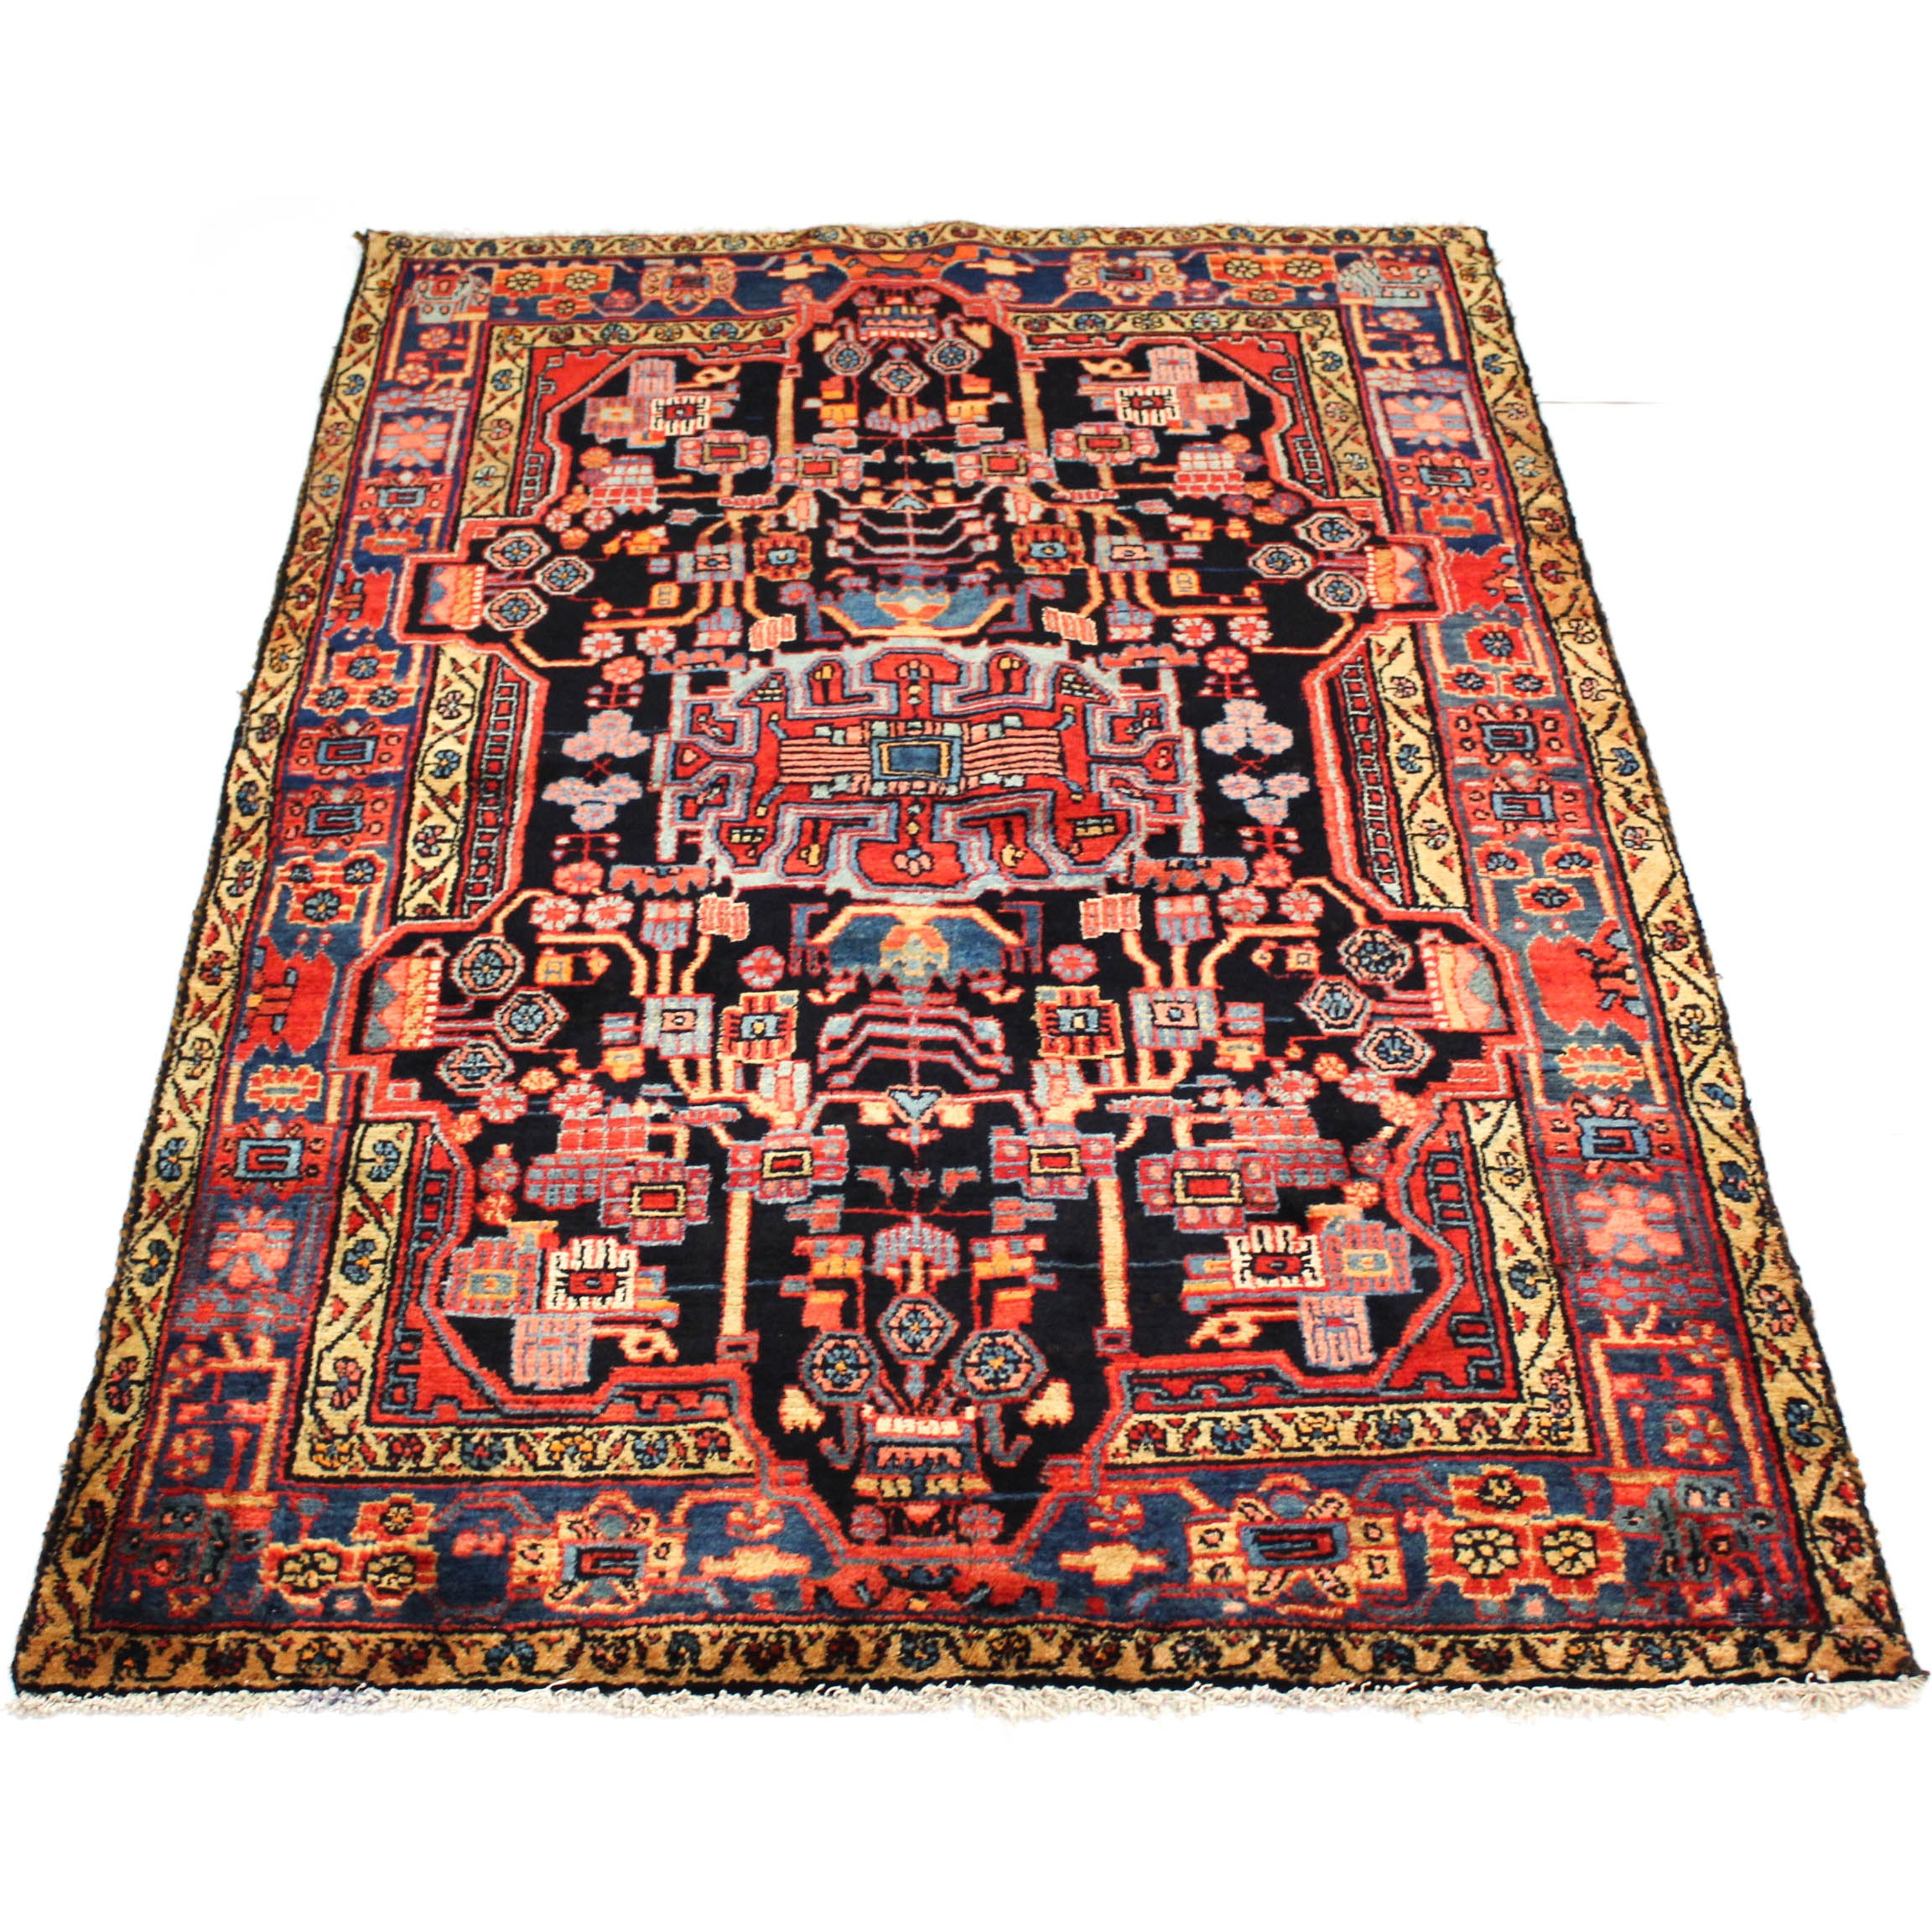 4'9 x 7'6 Hand-Knotted Semi-Antique Persian Nahavand Rug